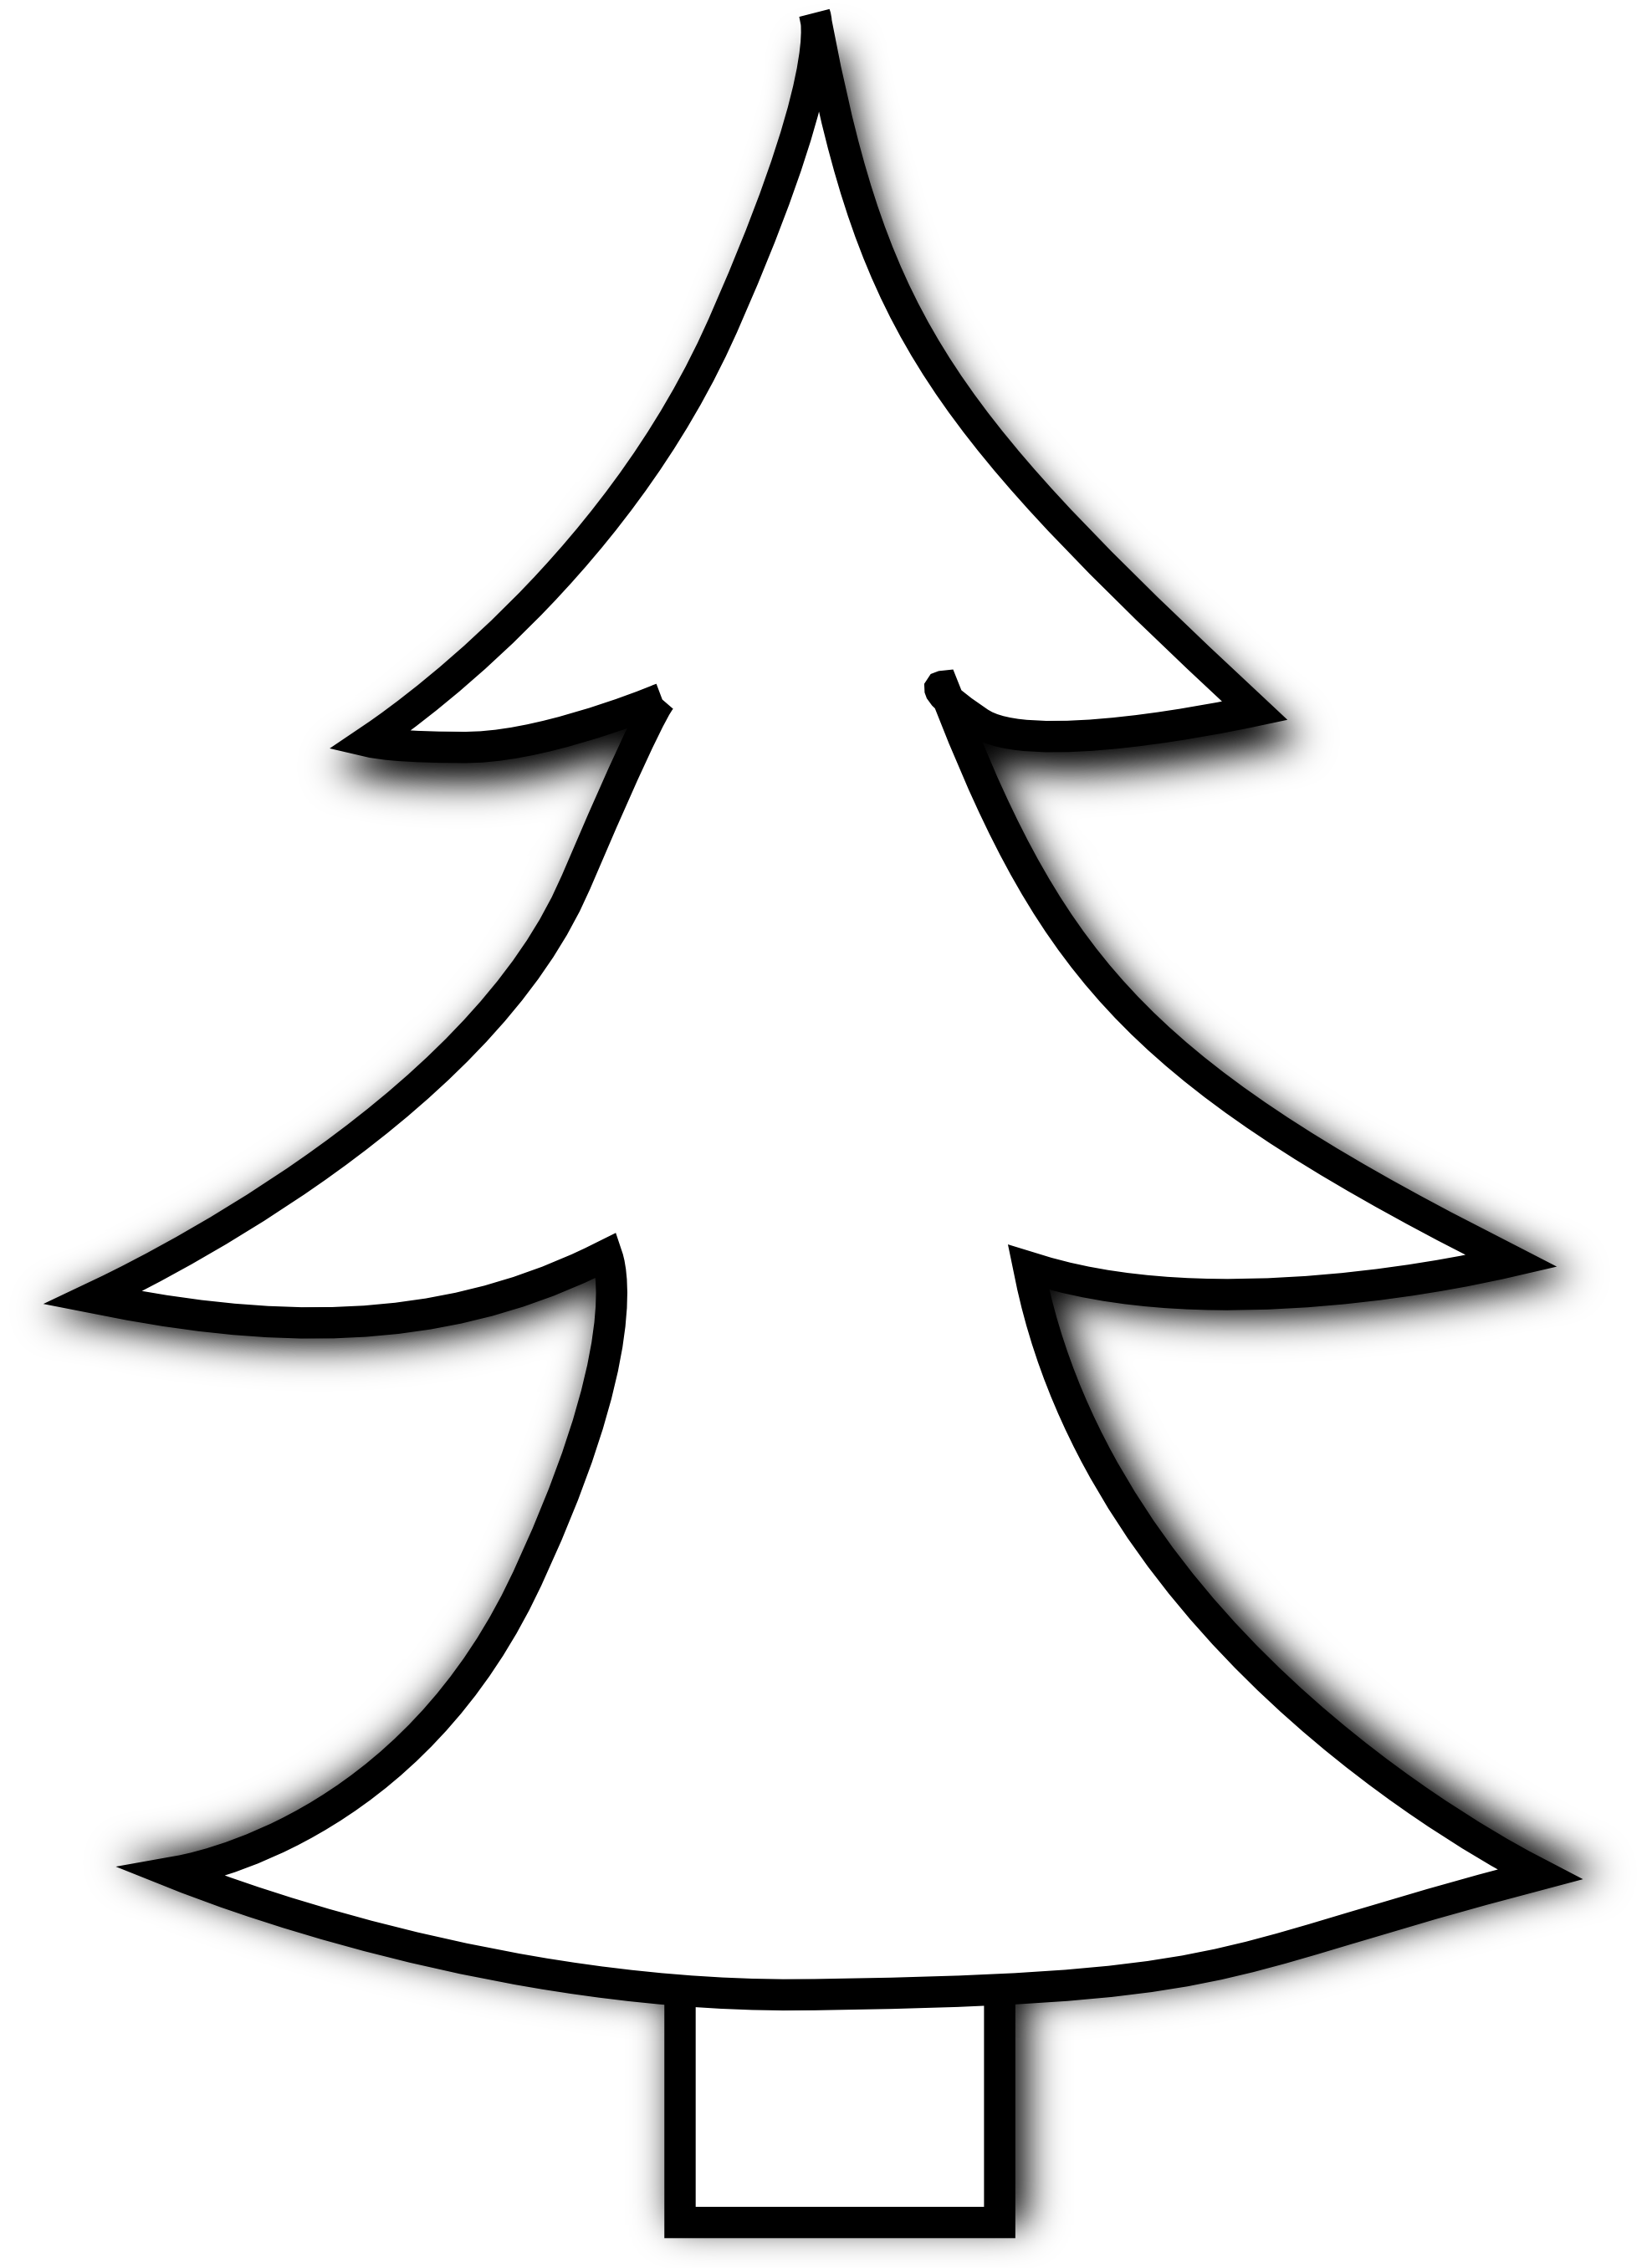 Clip art pine trees black and white free clipart